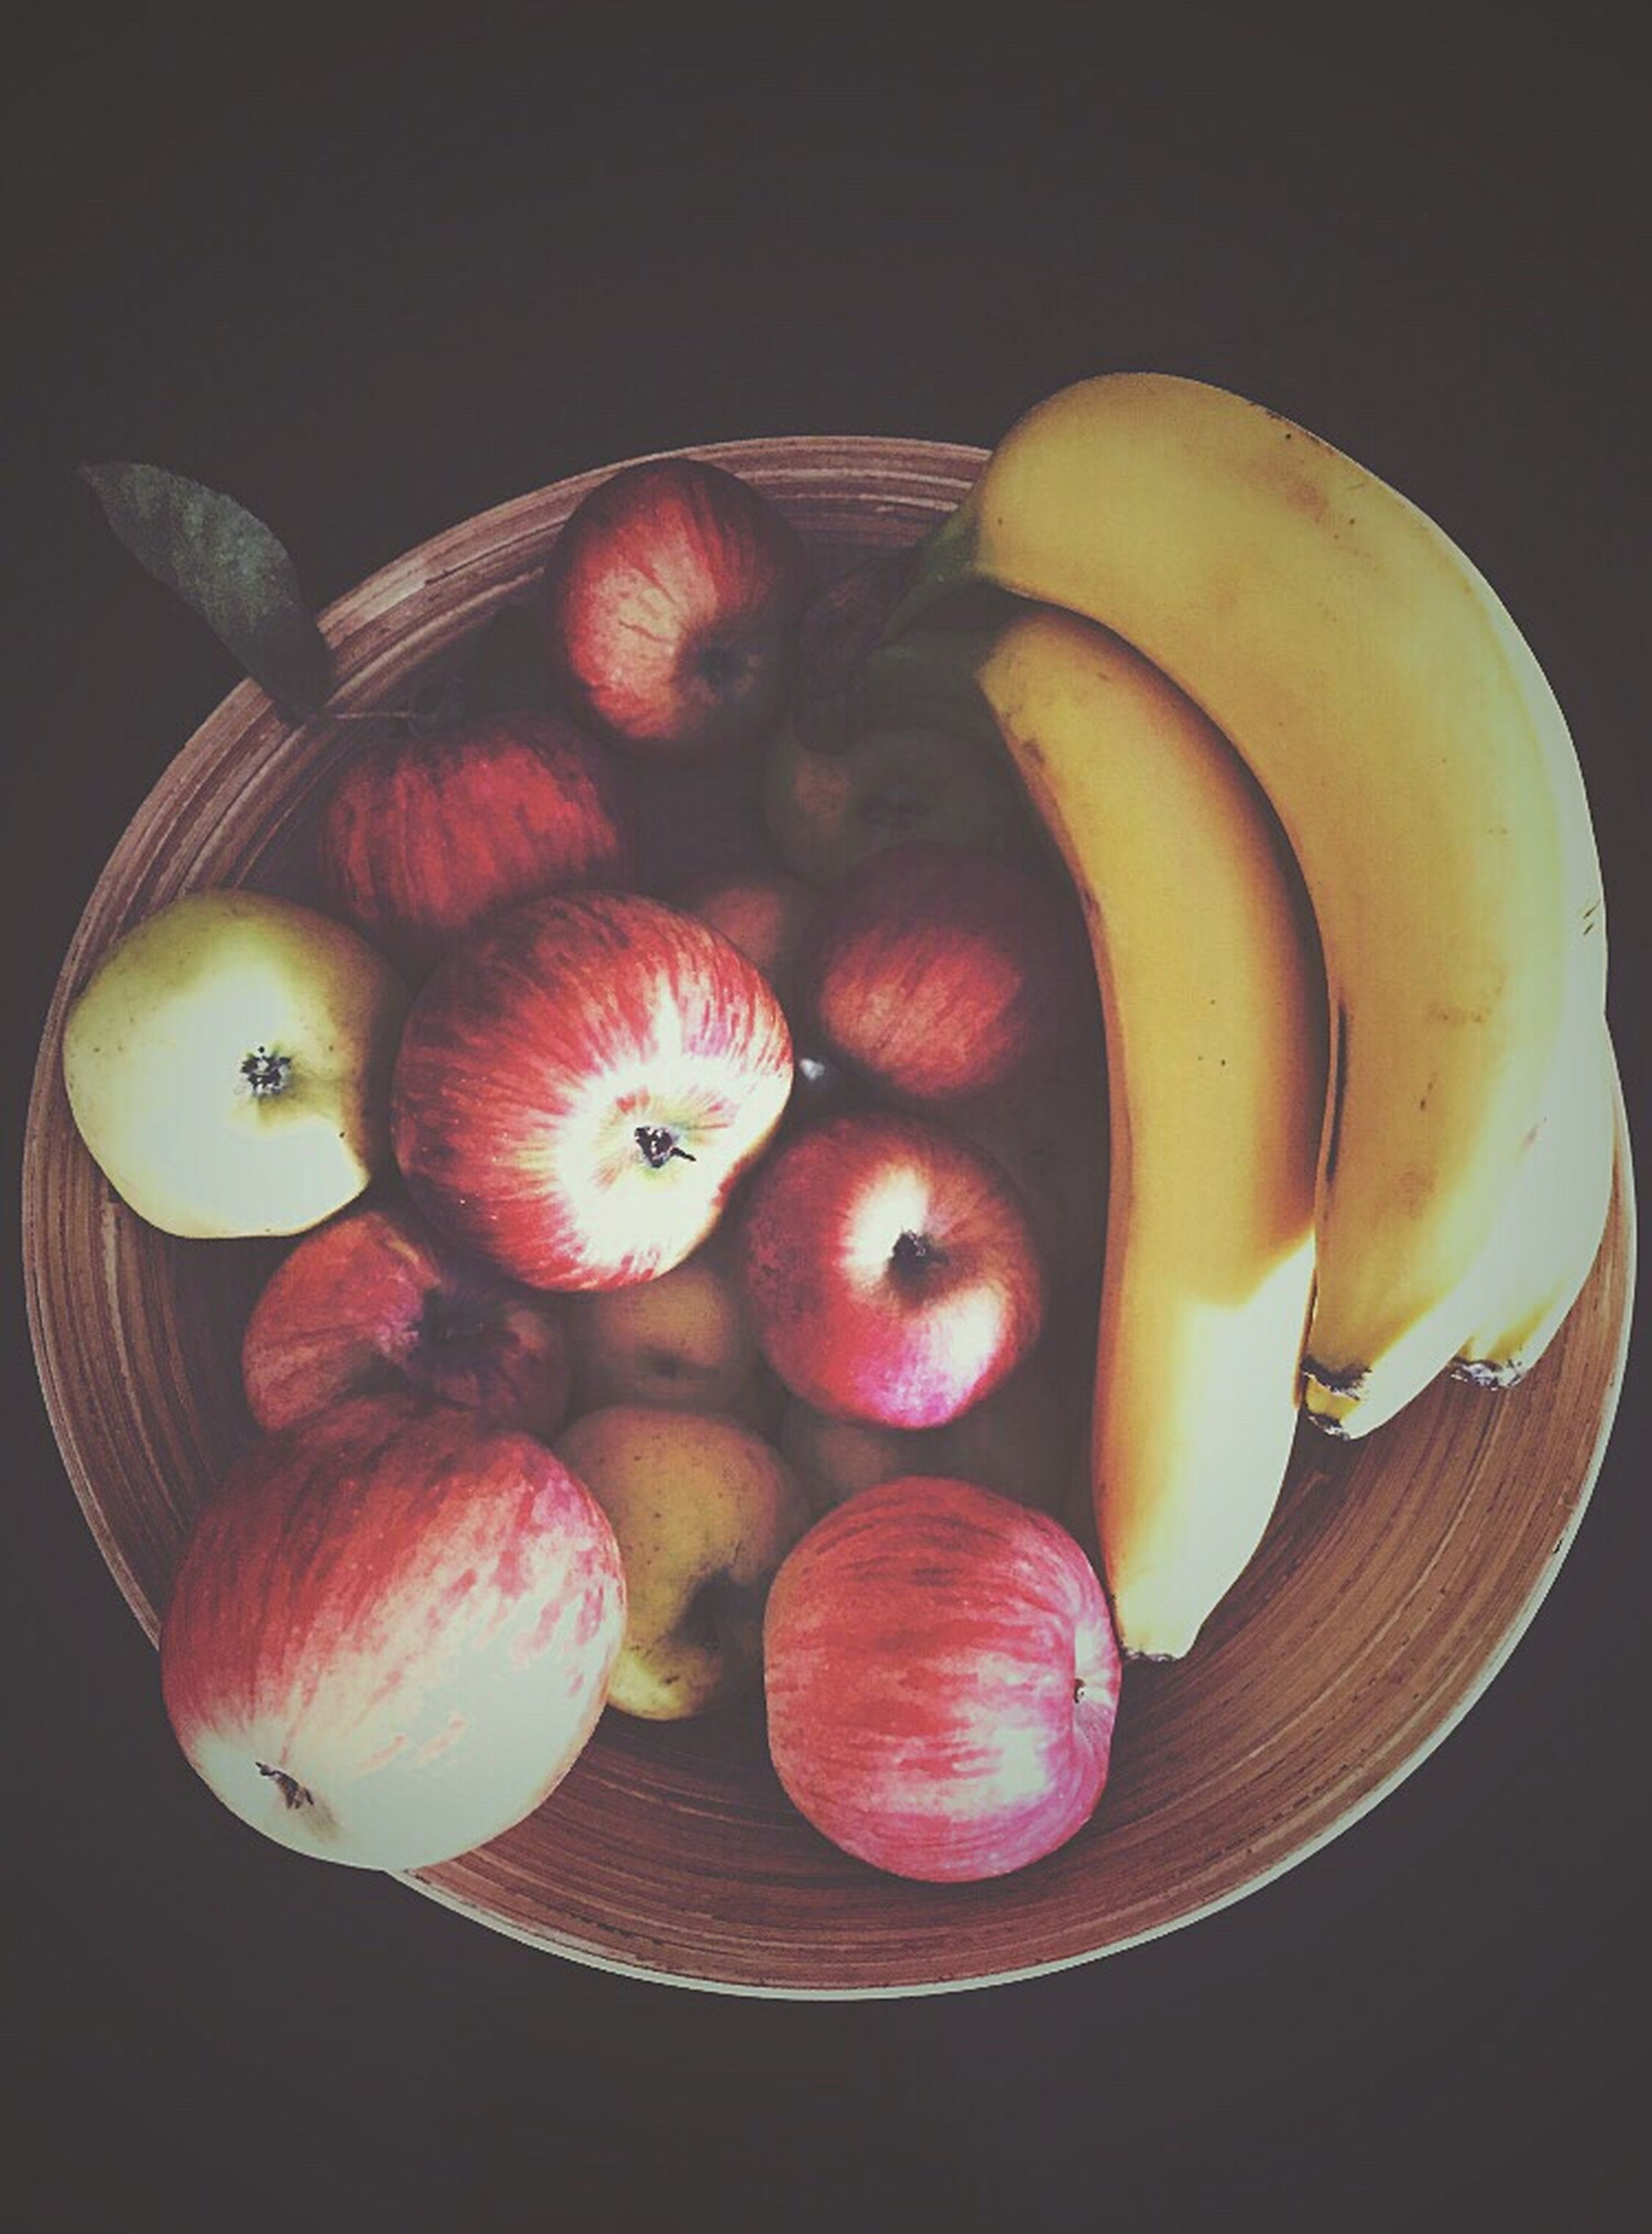 Yummy yum 🍏🍎🍌😌😋 Vitamins Fruitlover Fruitporn Apples And Bananas EyeEm Gallery I Love Colour Color Photography Beautiful Showcase: February